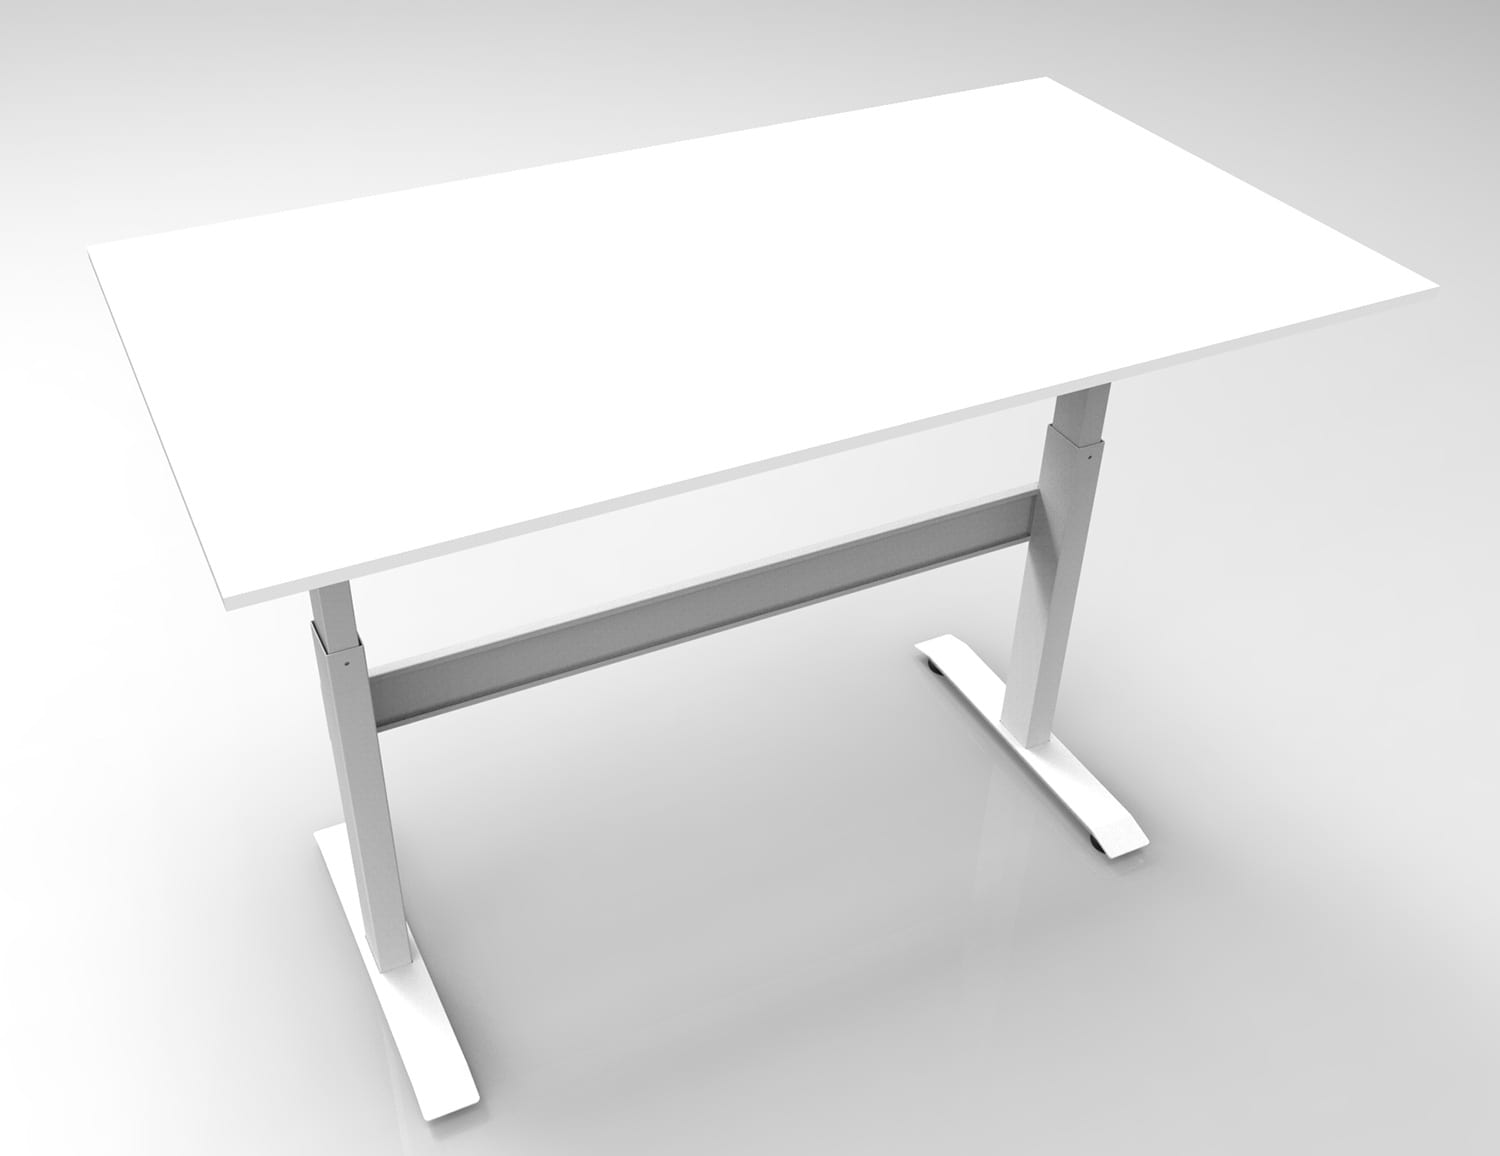 GDF02M gas spring height adjustable standing desk / sit-stand workstation white top